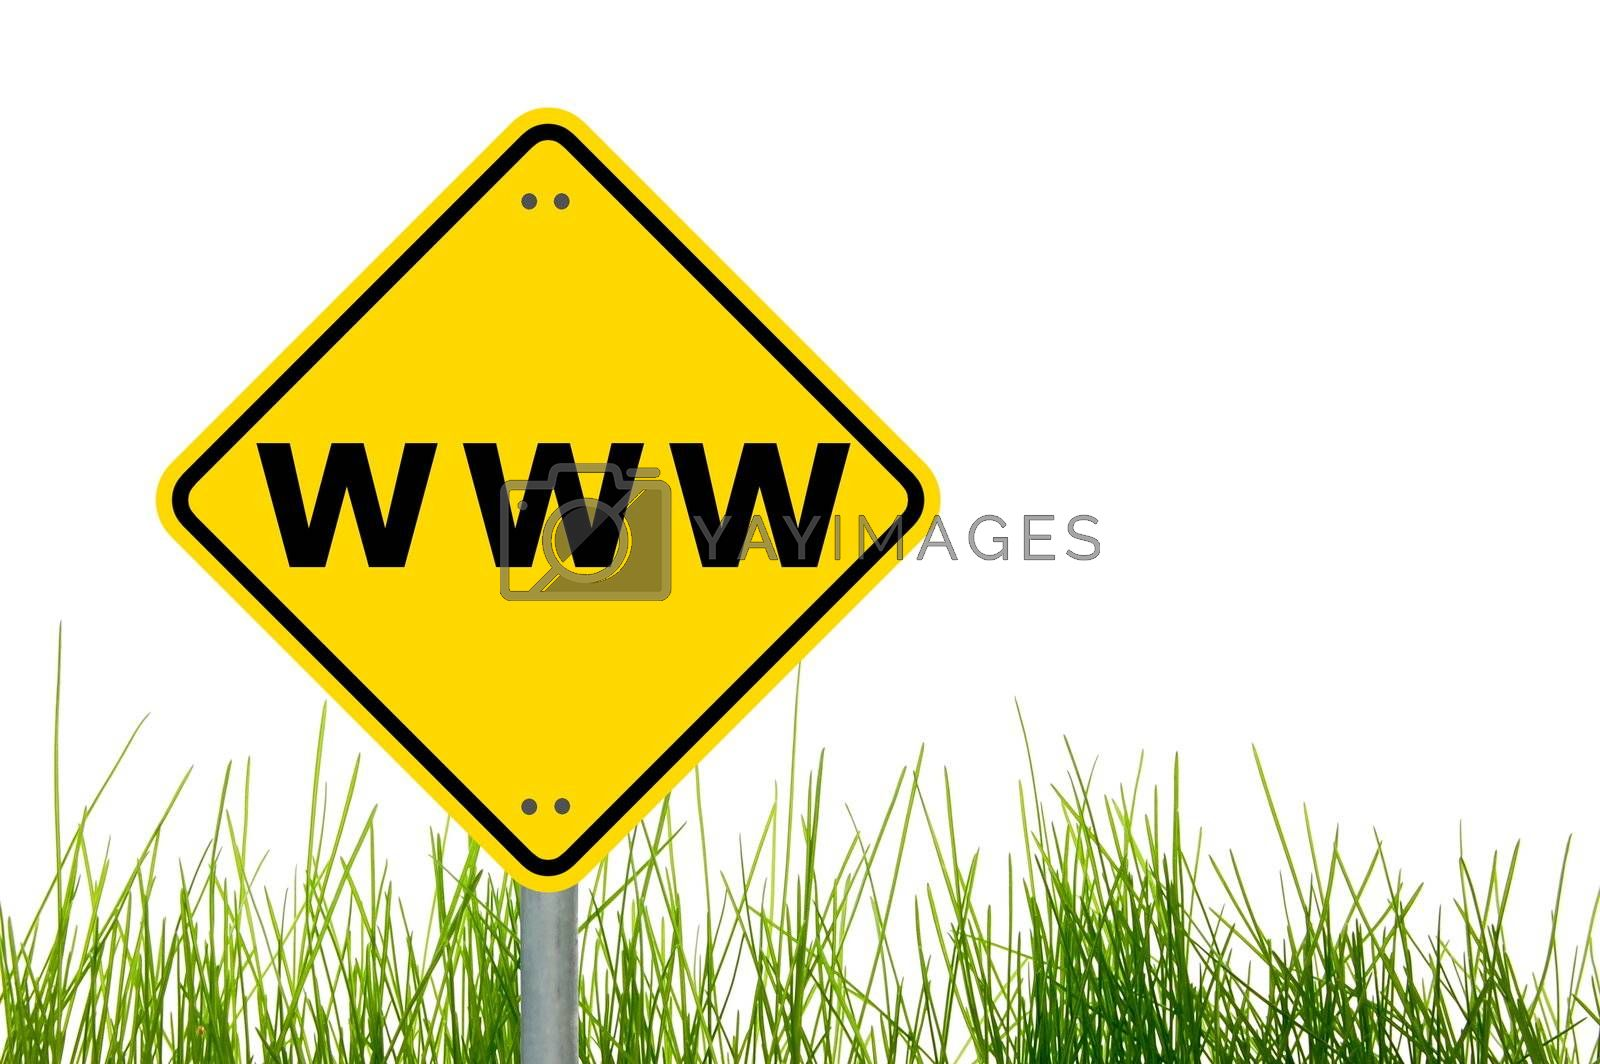 www or internet concept with copyspace for a text message